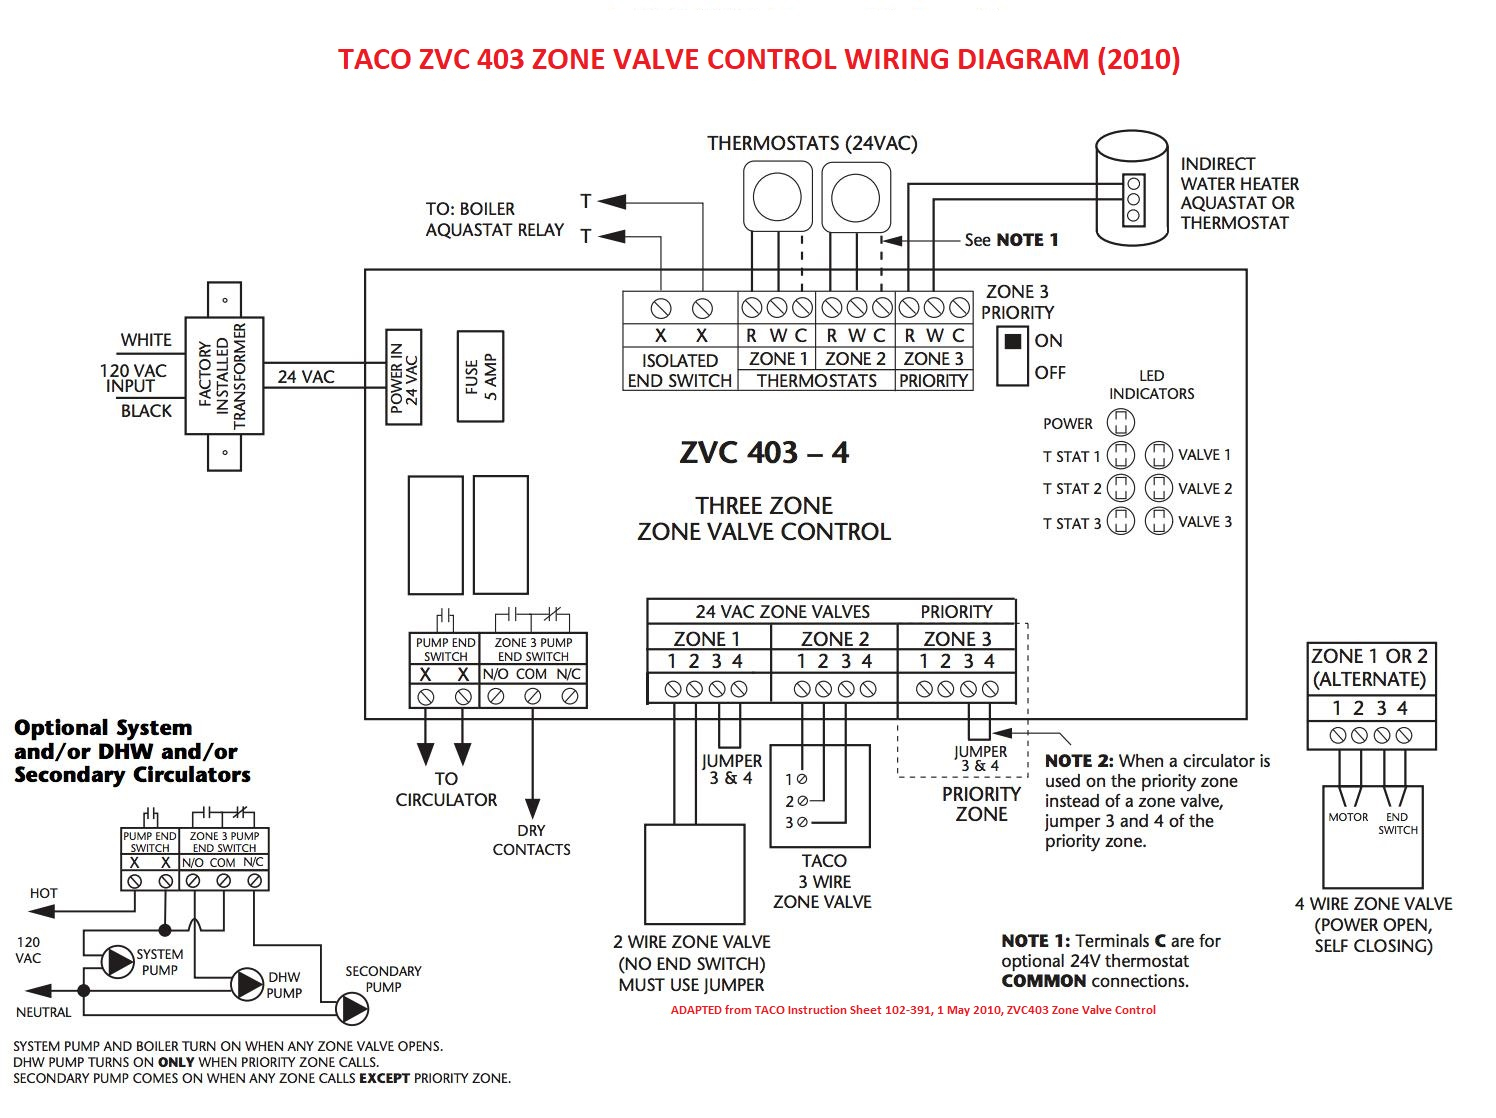 Zone Valve Wiring Installation & Instructions: Guide To Heating - Wiring Diagram For Nest 2 Thermostat With Weather King Heat Pump